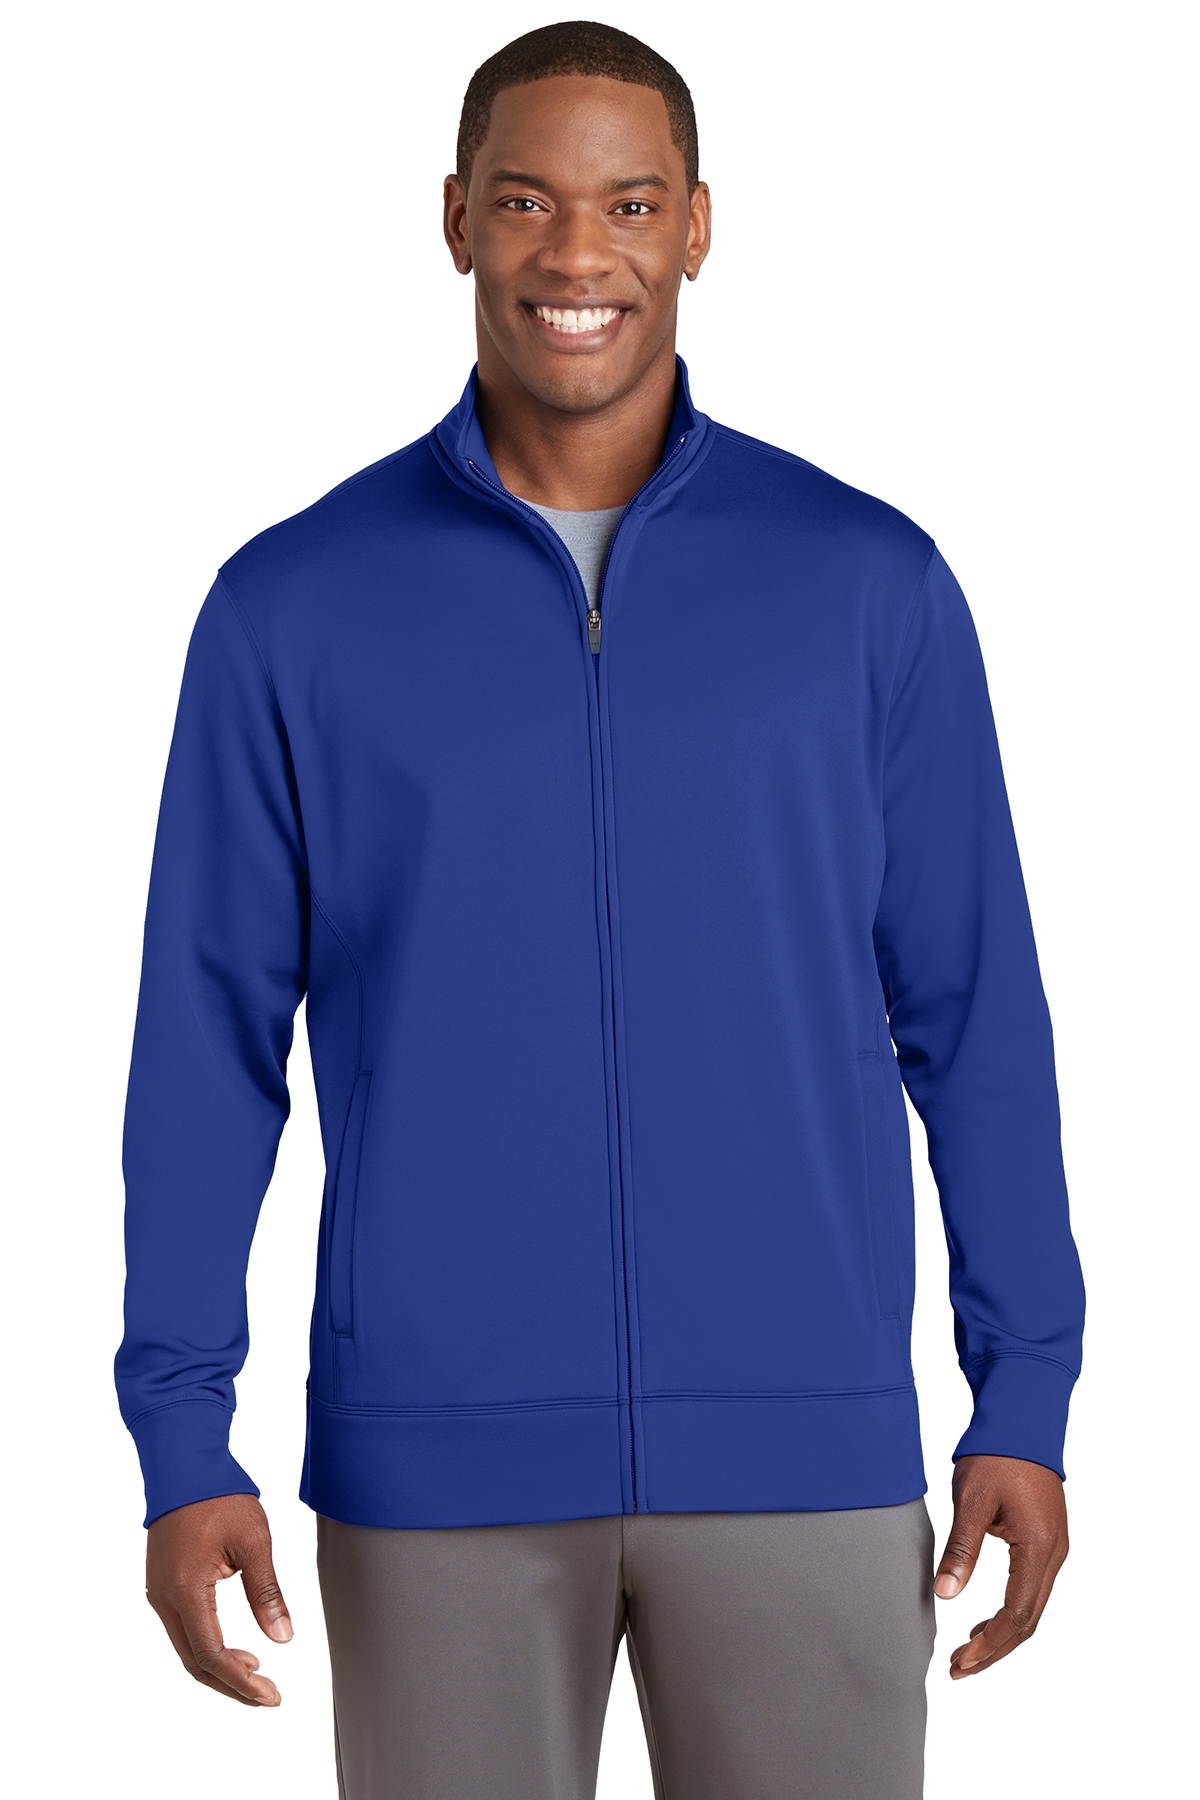 Sport Tek Sport Wick Fleece Full Zip Jacket Performance Sweatshirts Fleece Sanmar A wide variety of tek jacket options are available to you, such as feature, shell material, and decoration. sport tek sport wick fleece full zip